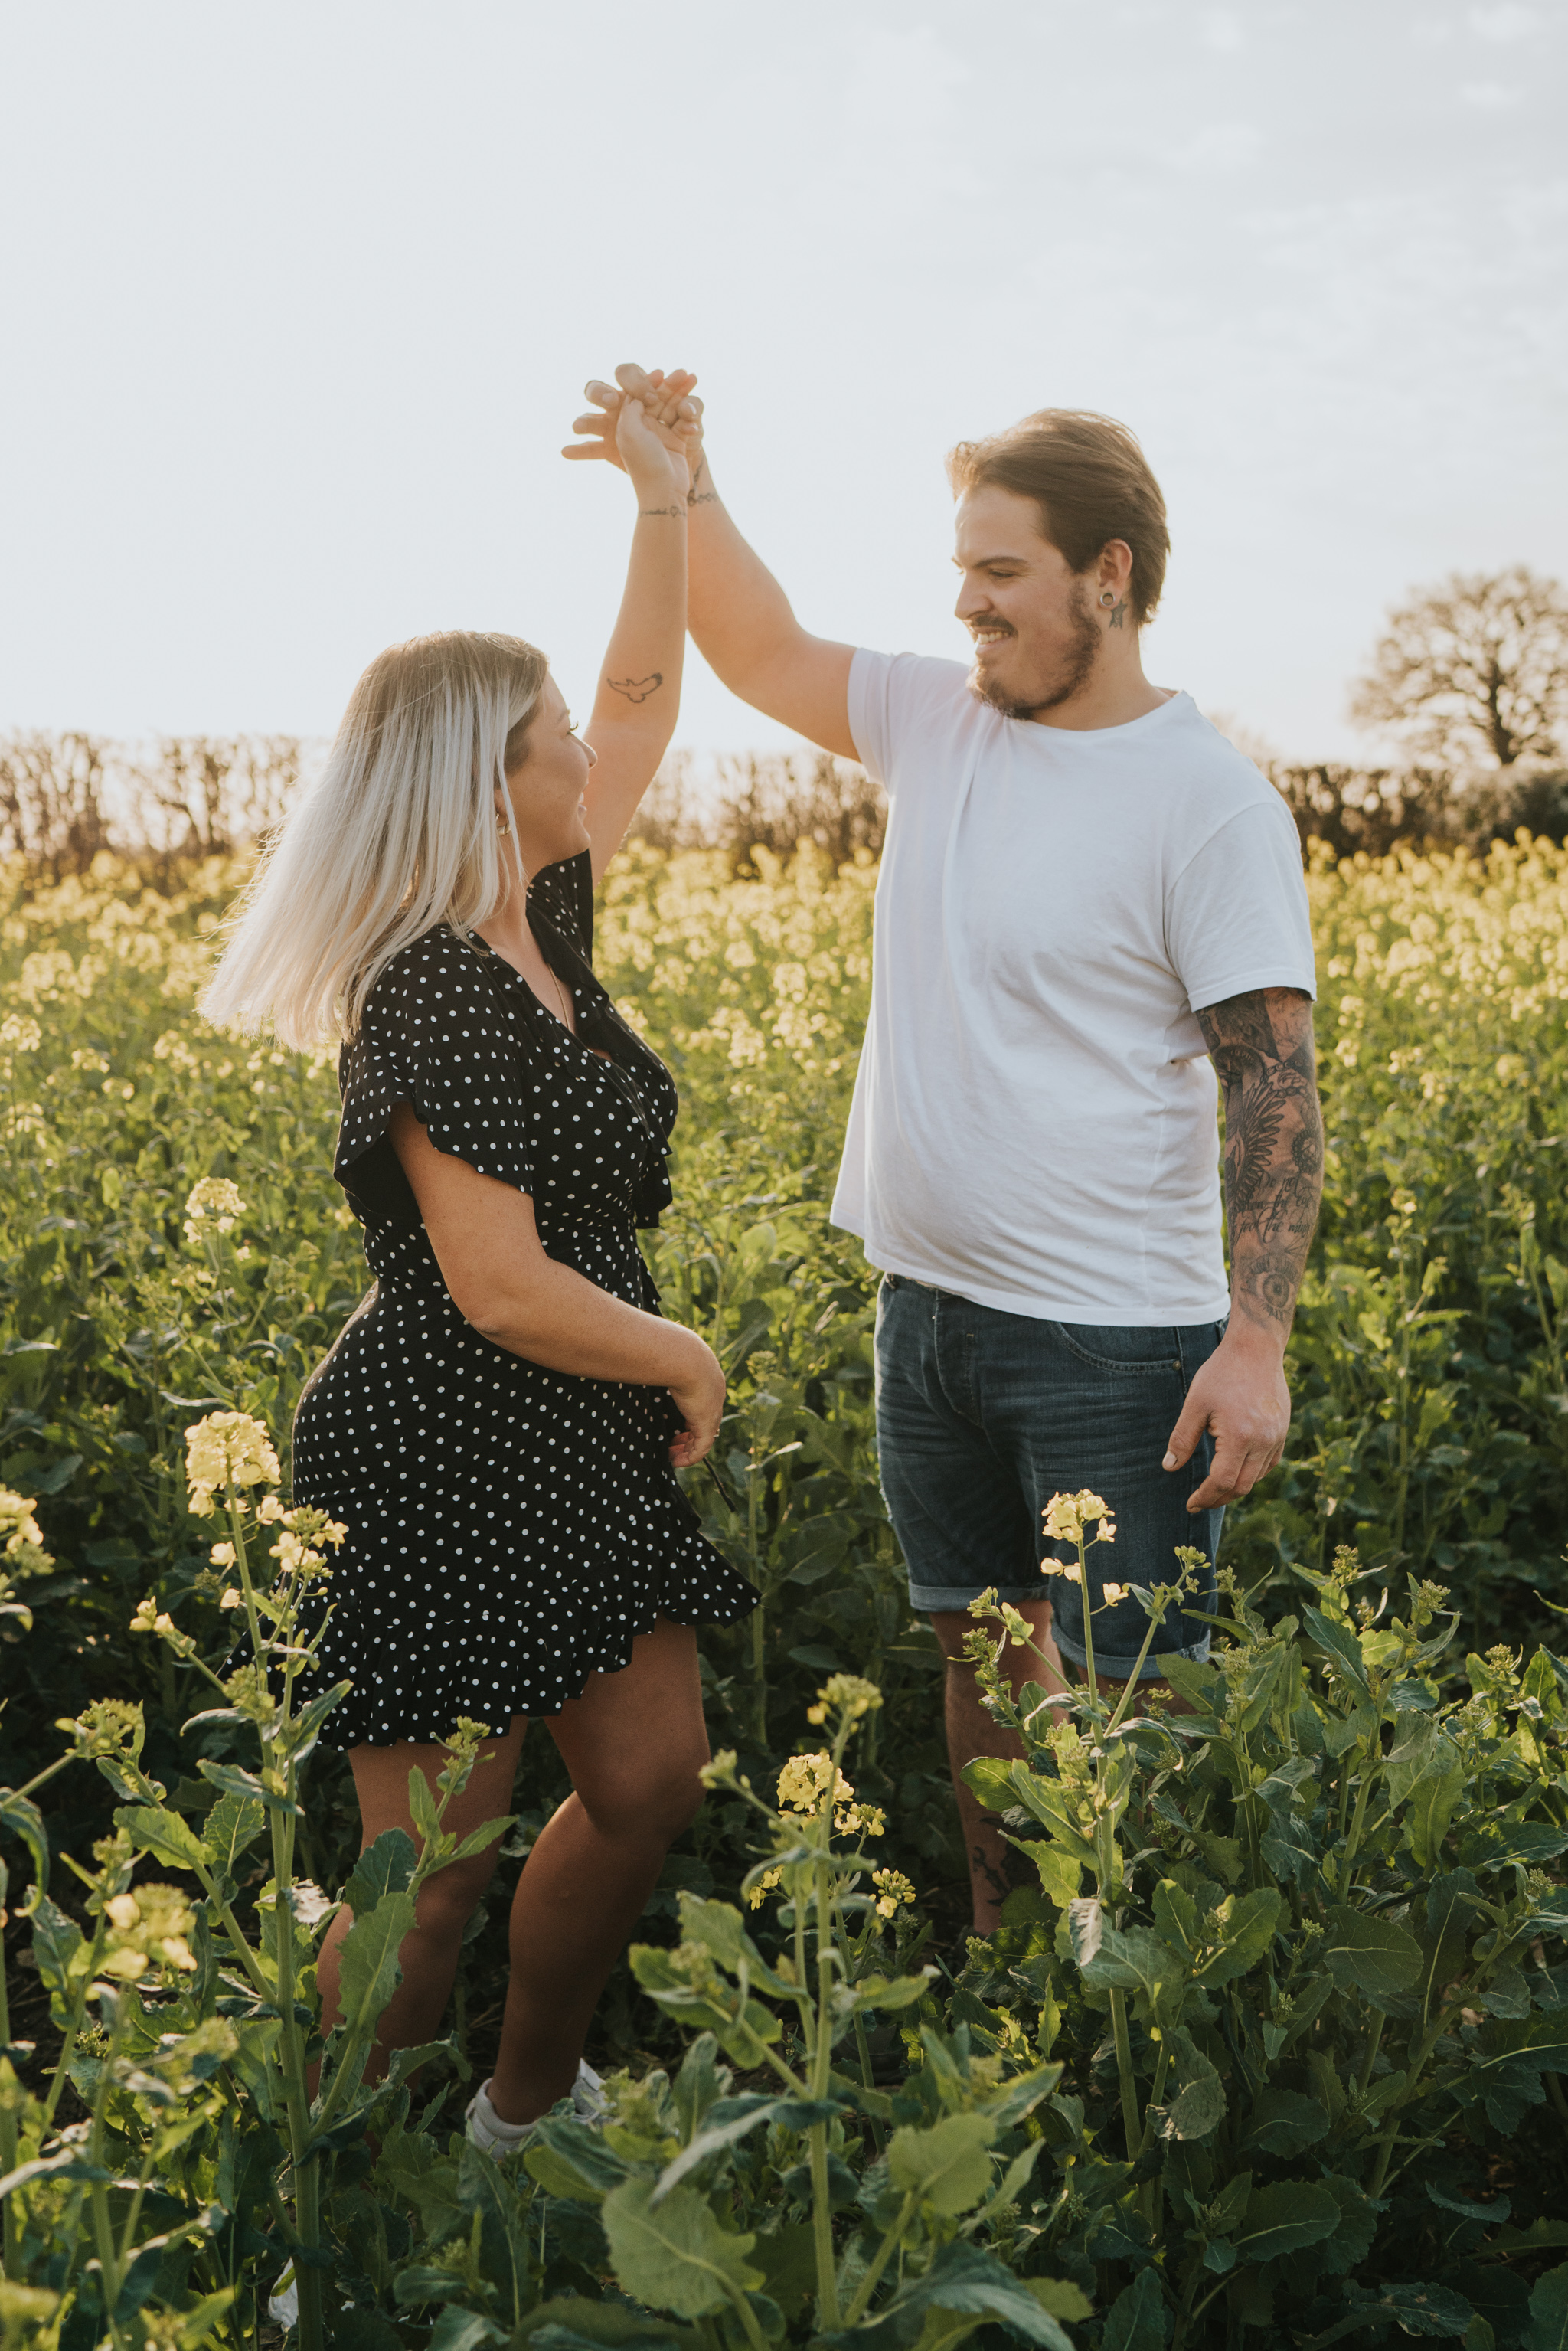 chloe-dan-pre-wedding-engagement-session-countryside-grace-elizabeth-colchester-essex-alternative-wedding-lifestyle-photographer-suffolk-norfolk-devon (13 of 50).jpg